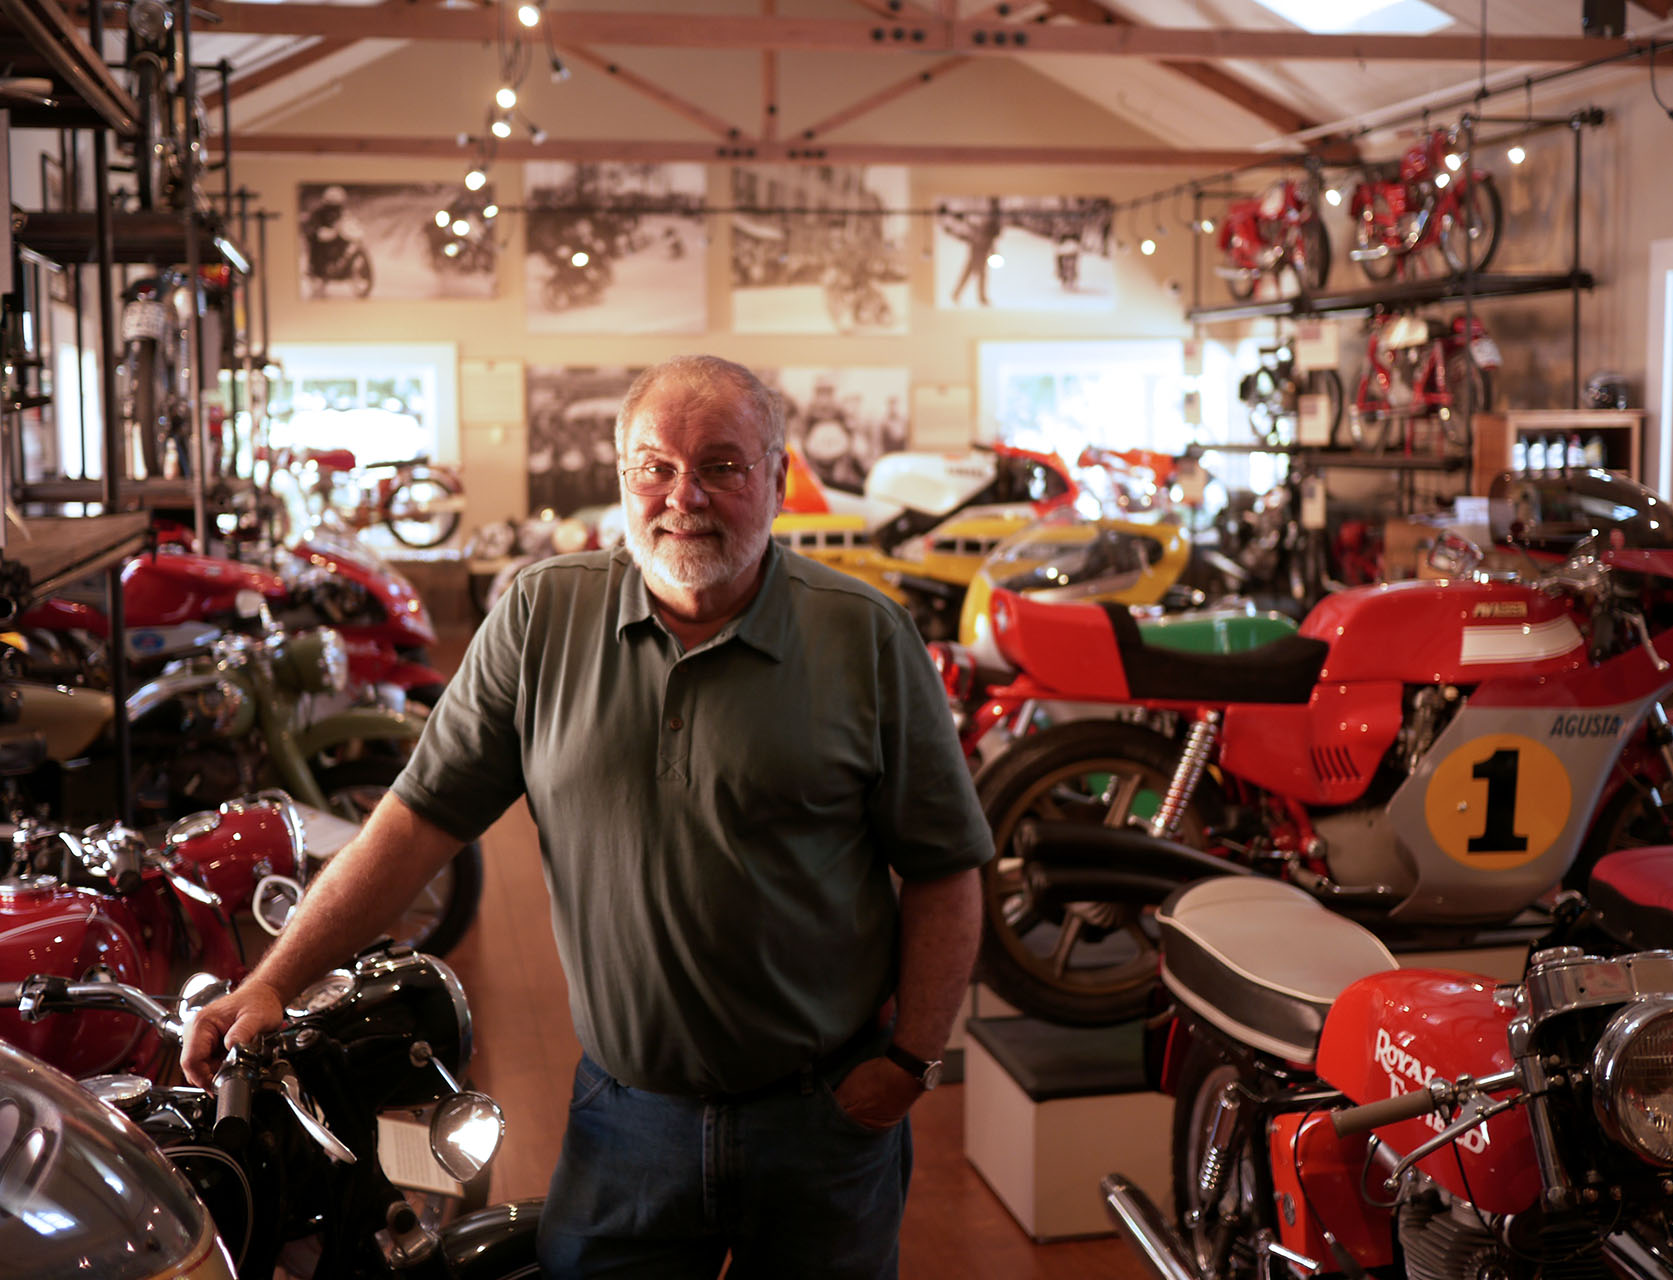 Richard Watson, docent and font of amazing stories. Let him be your guide to a wonderful world of motorcycles.